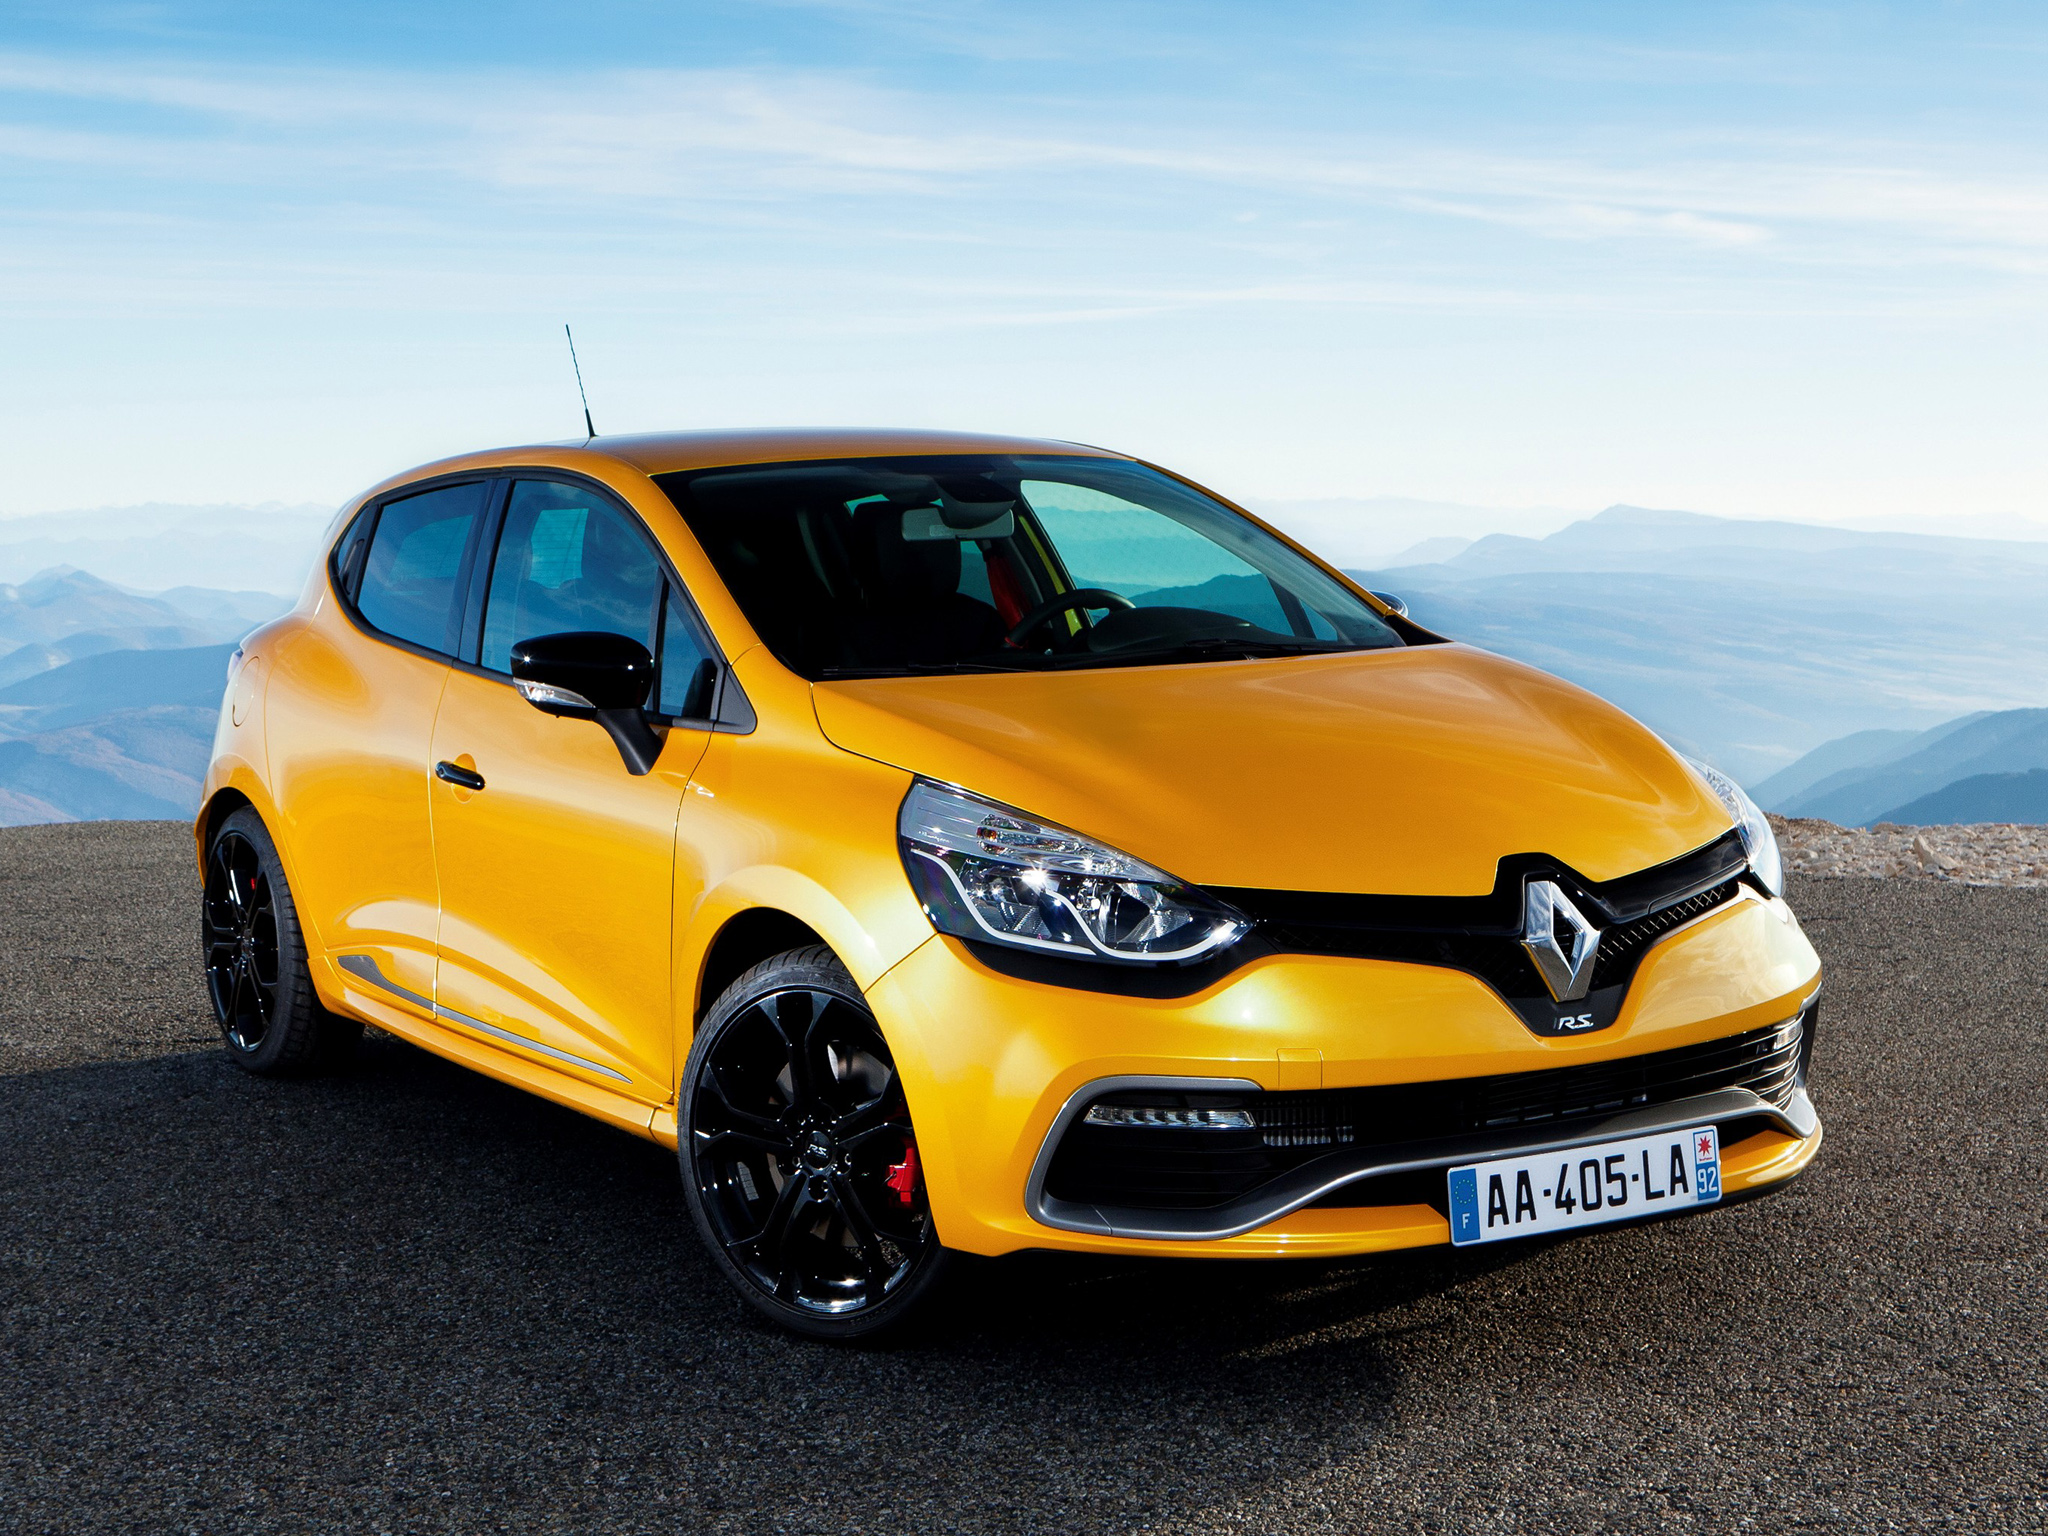 renault clio 3 free car wallpaper. Black Bedroom Furniture Sets. Home Design Ideas